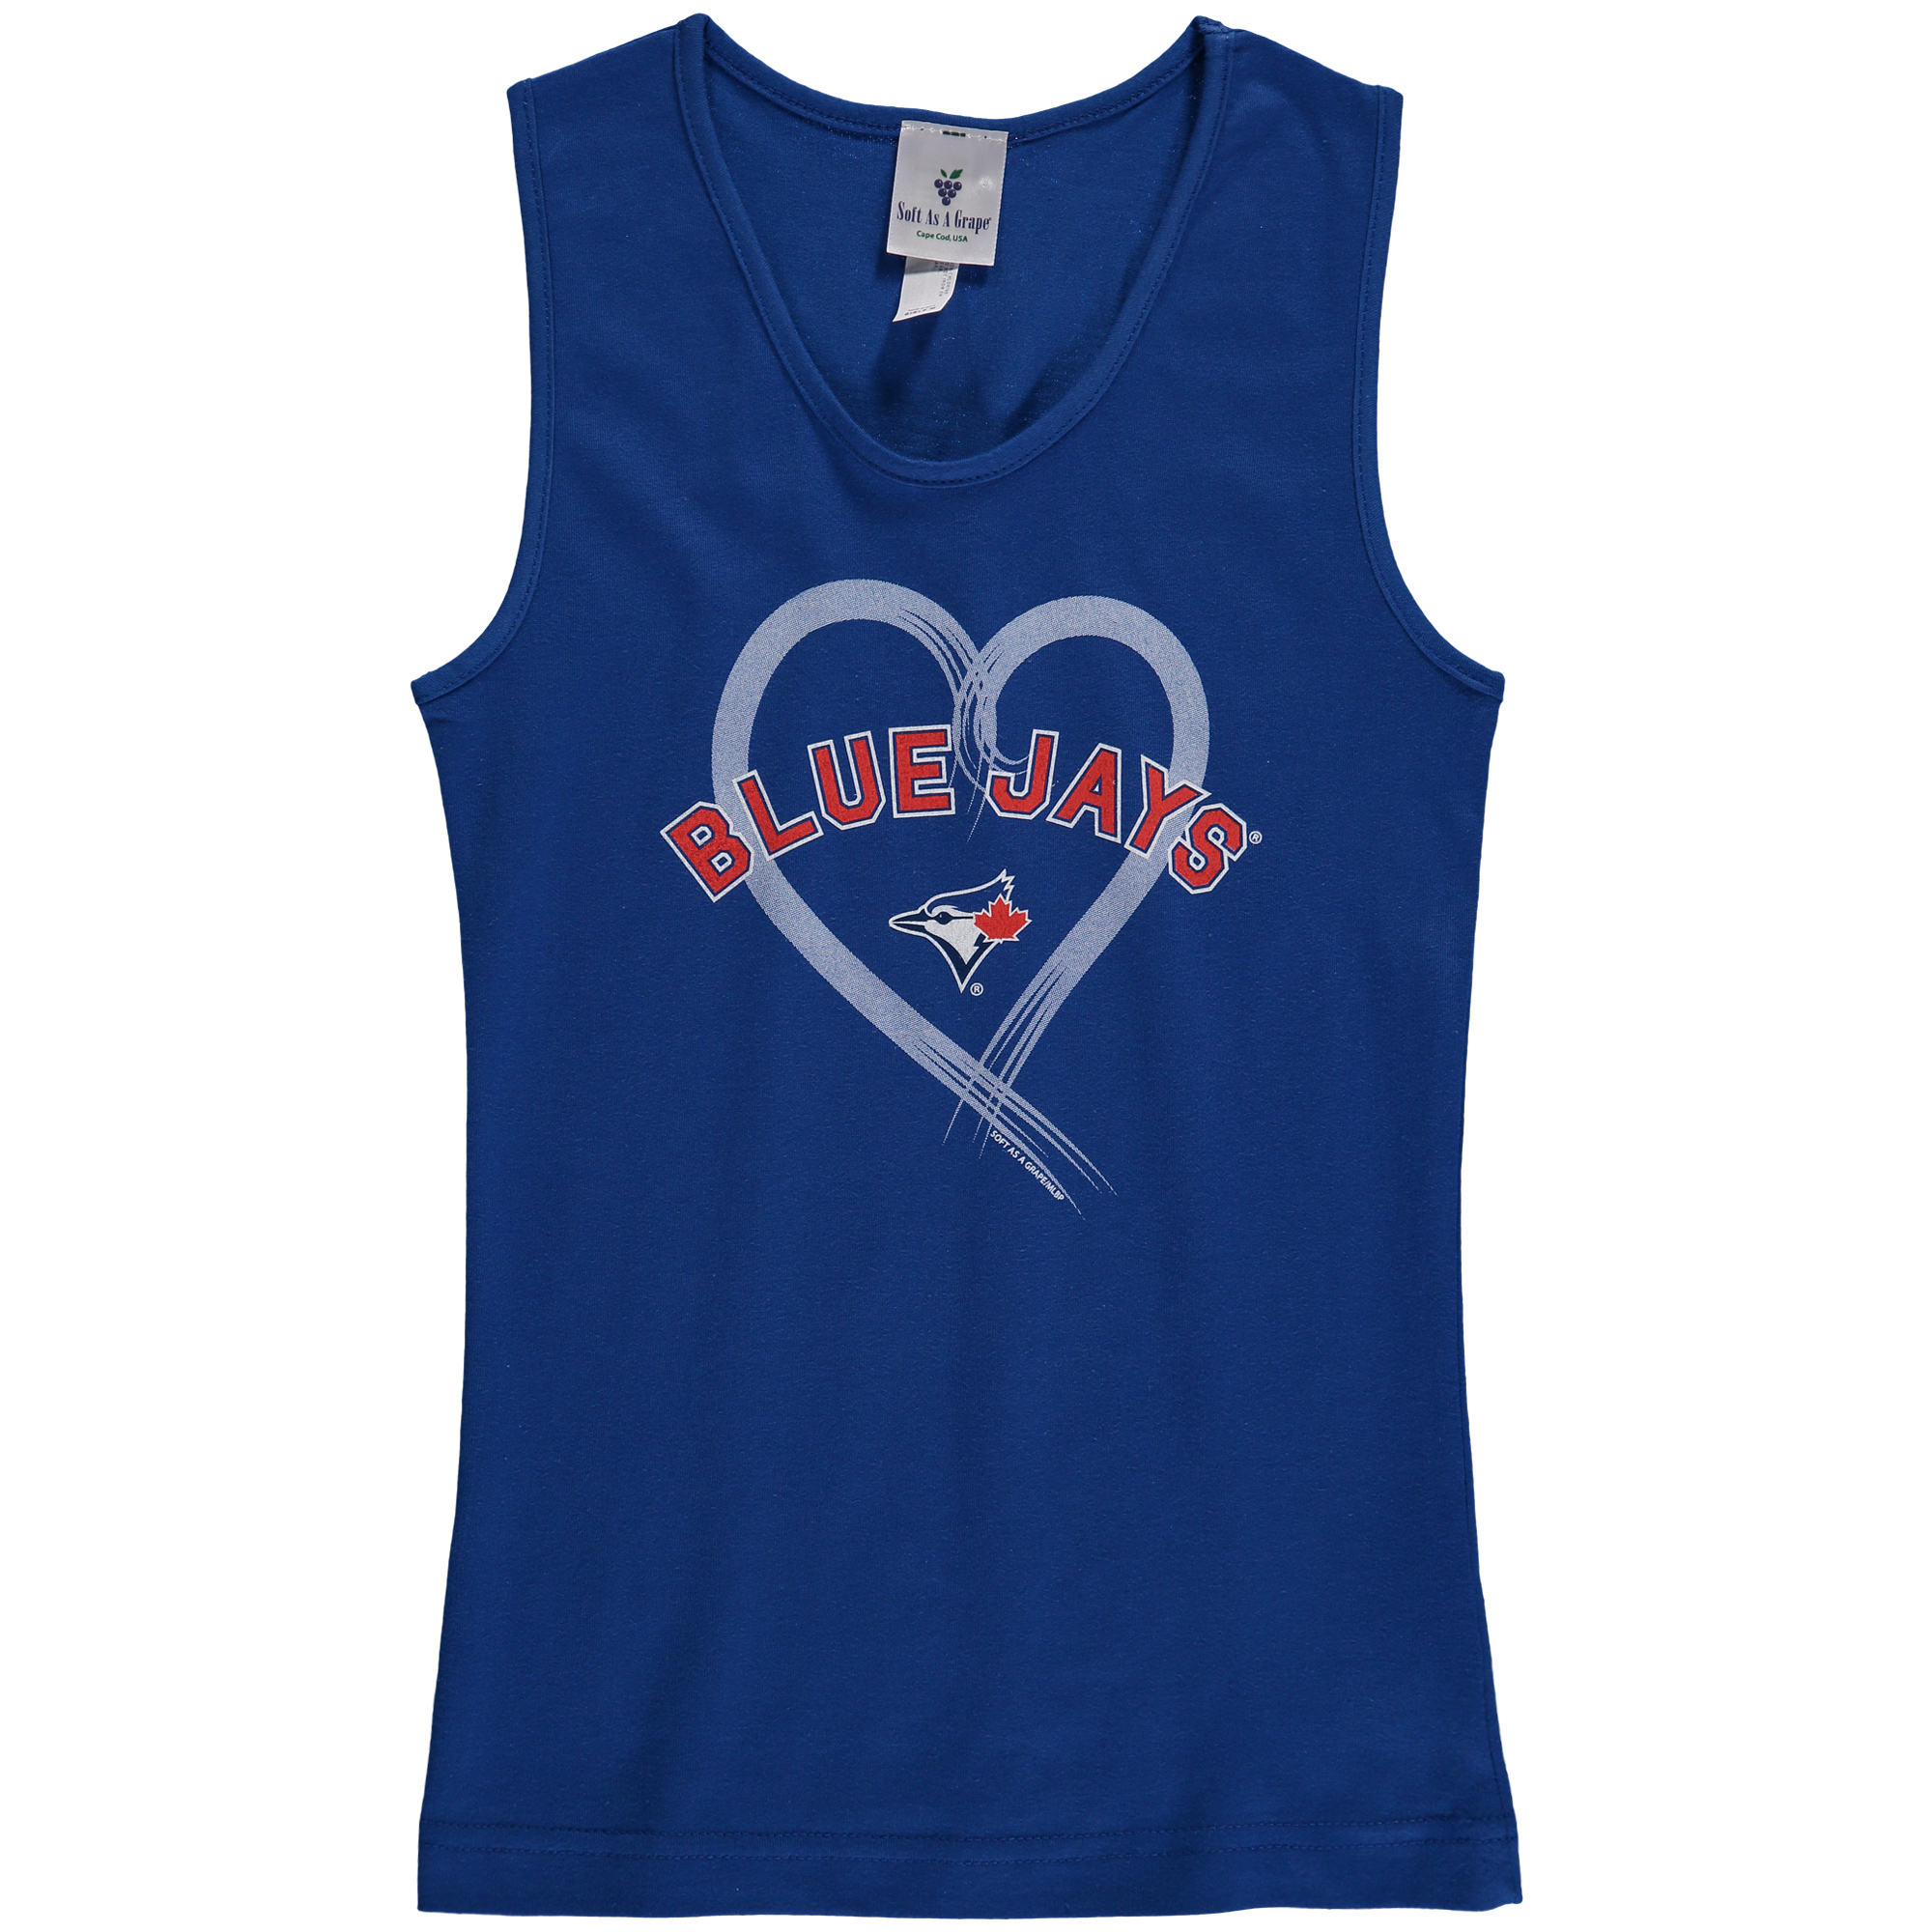 Toronto Blue Jays Soft as a Grape Girls Youth Rally Tank Top - Royal